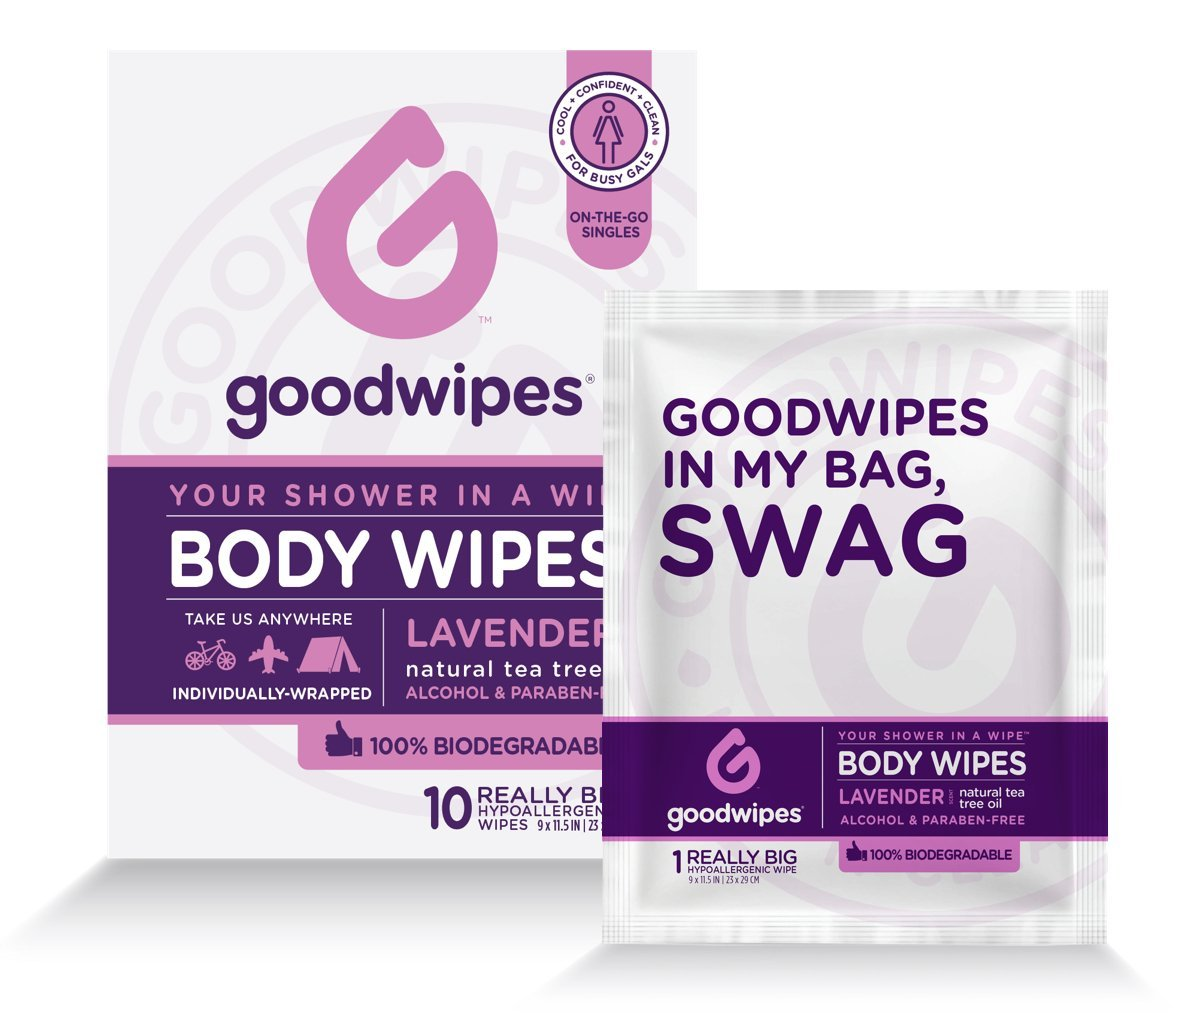 Goodwipes Body Wipes, Lavender Scent, 10 Individually Wrapped Wet Wipes by goodwipes